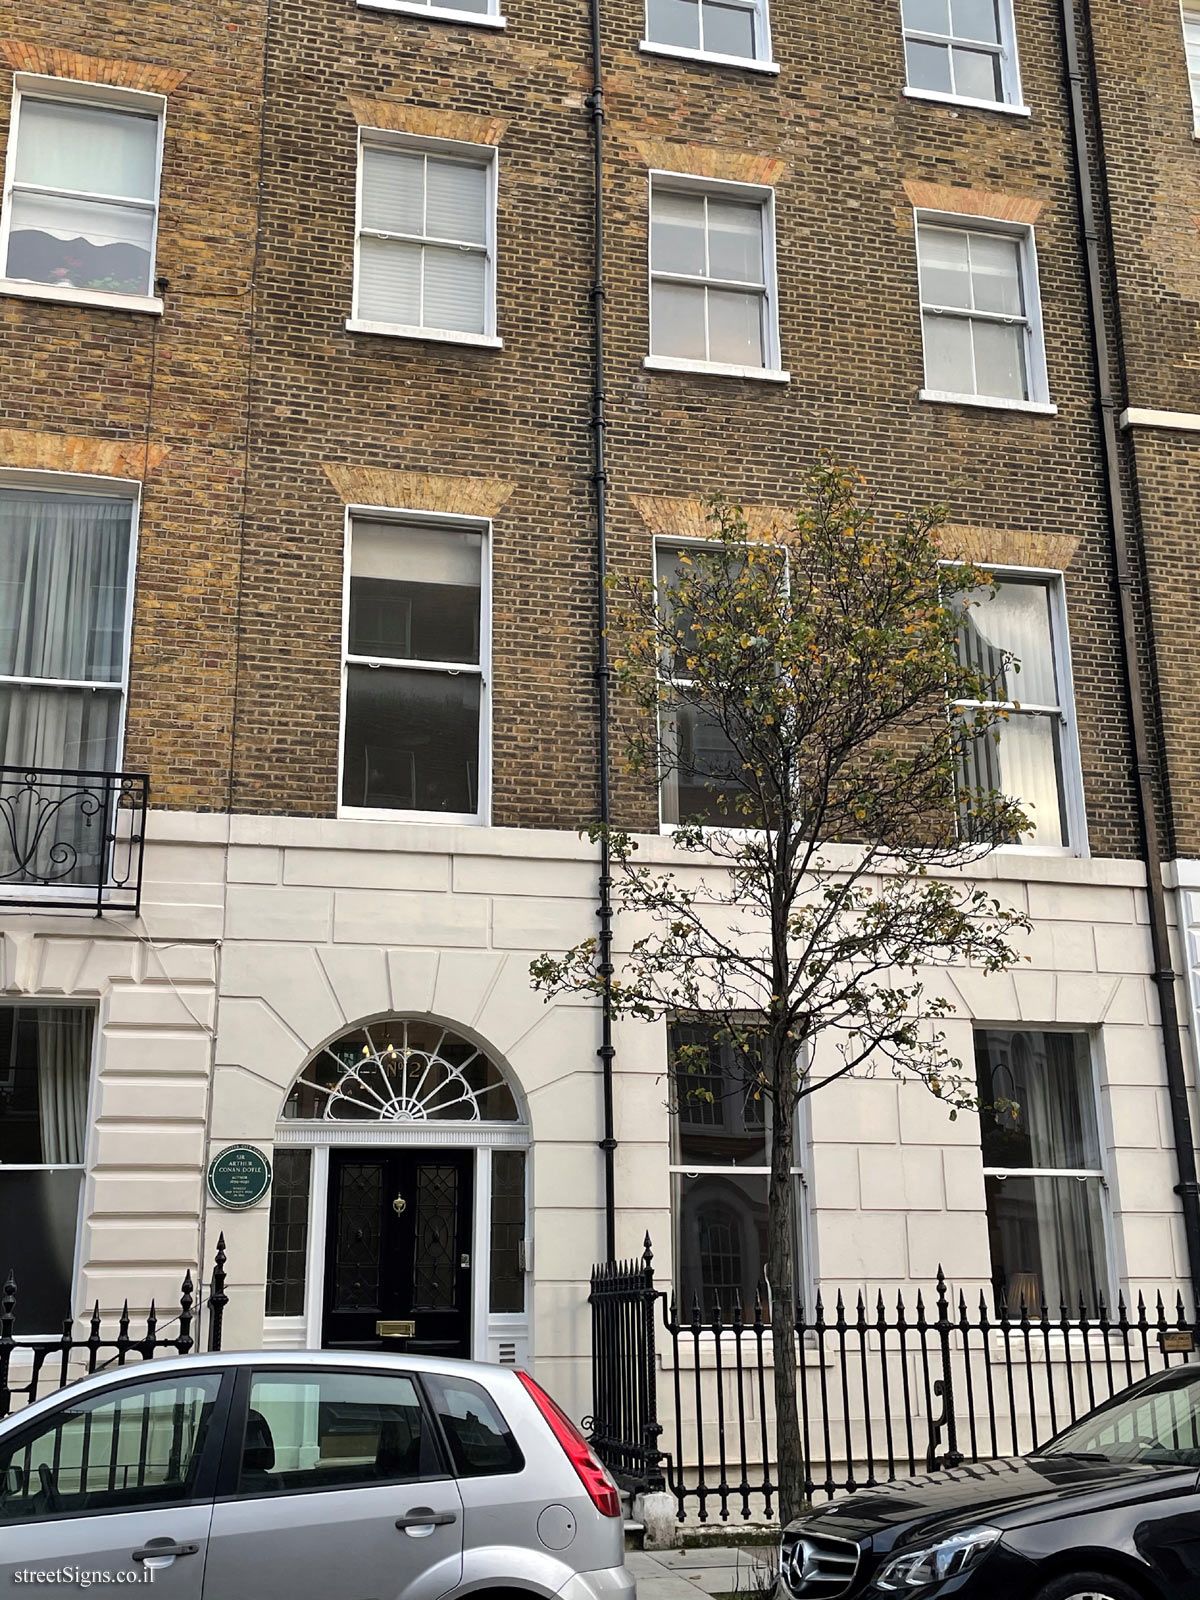 London - Commemorative plaque where Arthur Conan Doyle lived and wrote - 24 Upper Wimpole St, Marylebone, London W1G 6NE, UK